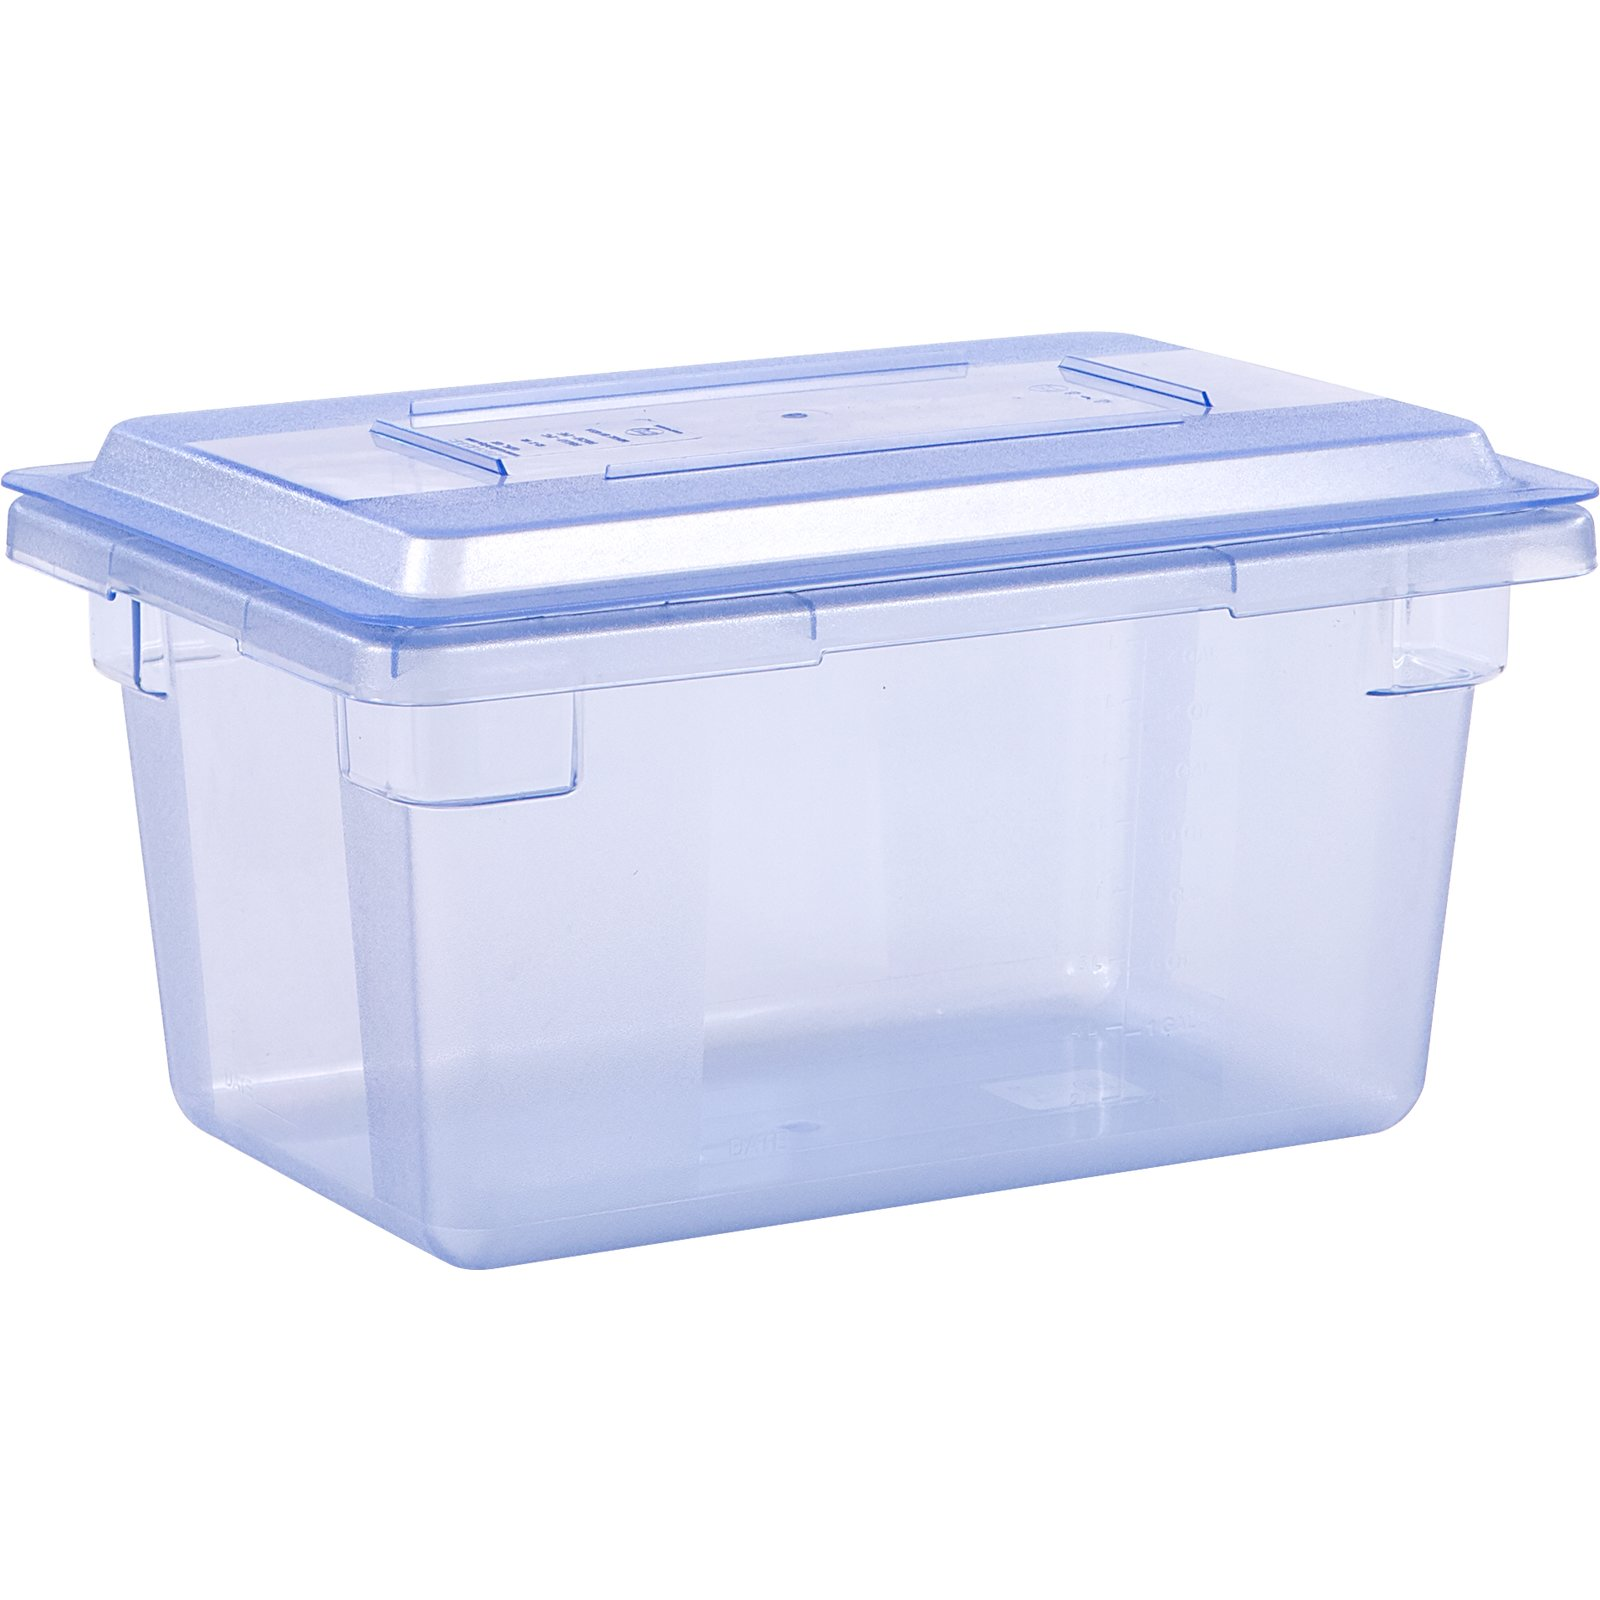 10612C14 StorPlus Color Coded Food Box Storage Container 5 Gallon